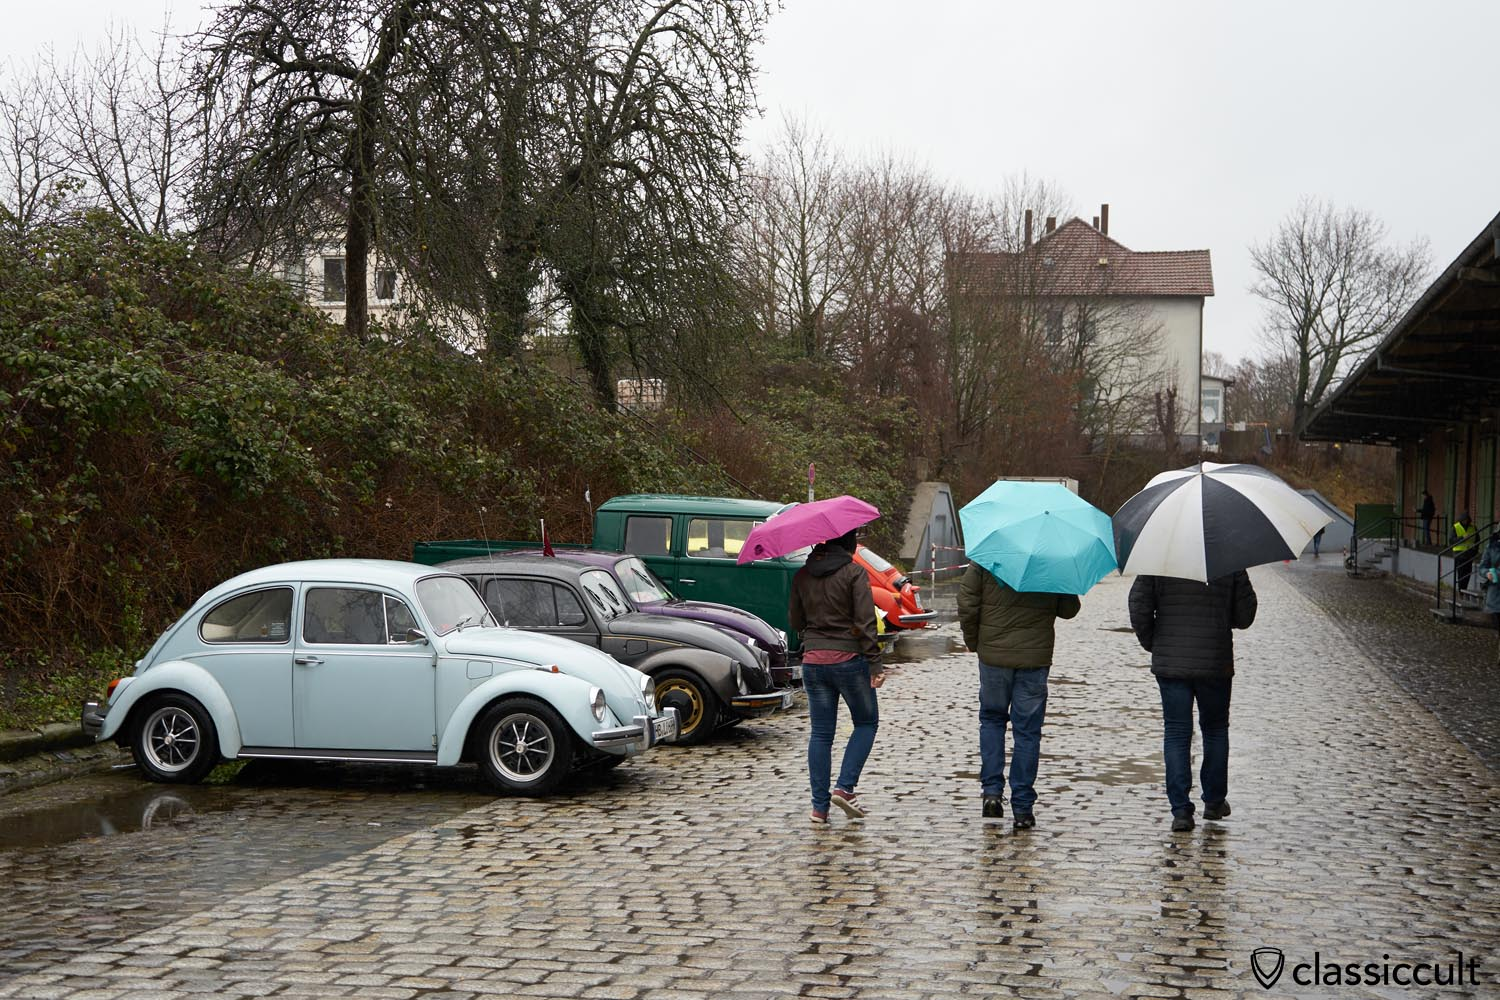 My 69 VW 1500 Beetle at Herford Wintertreffen 2019